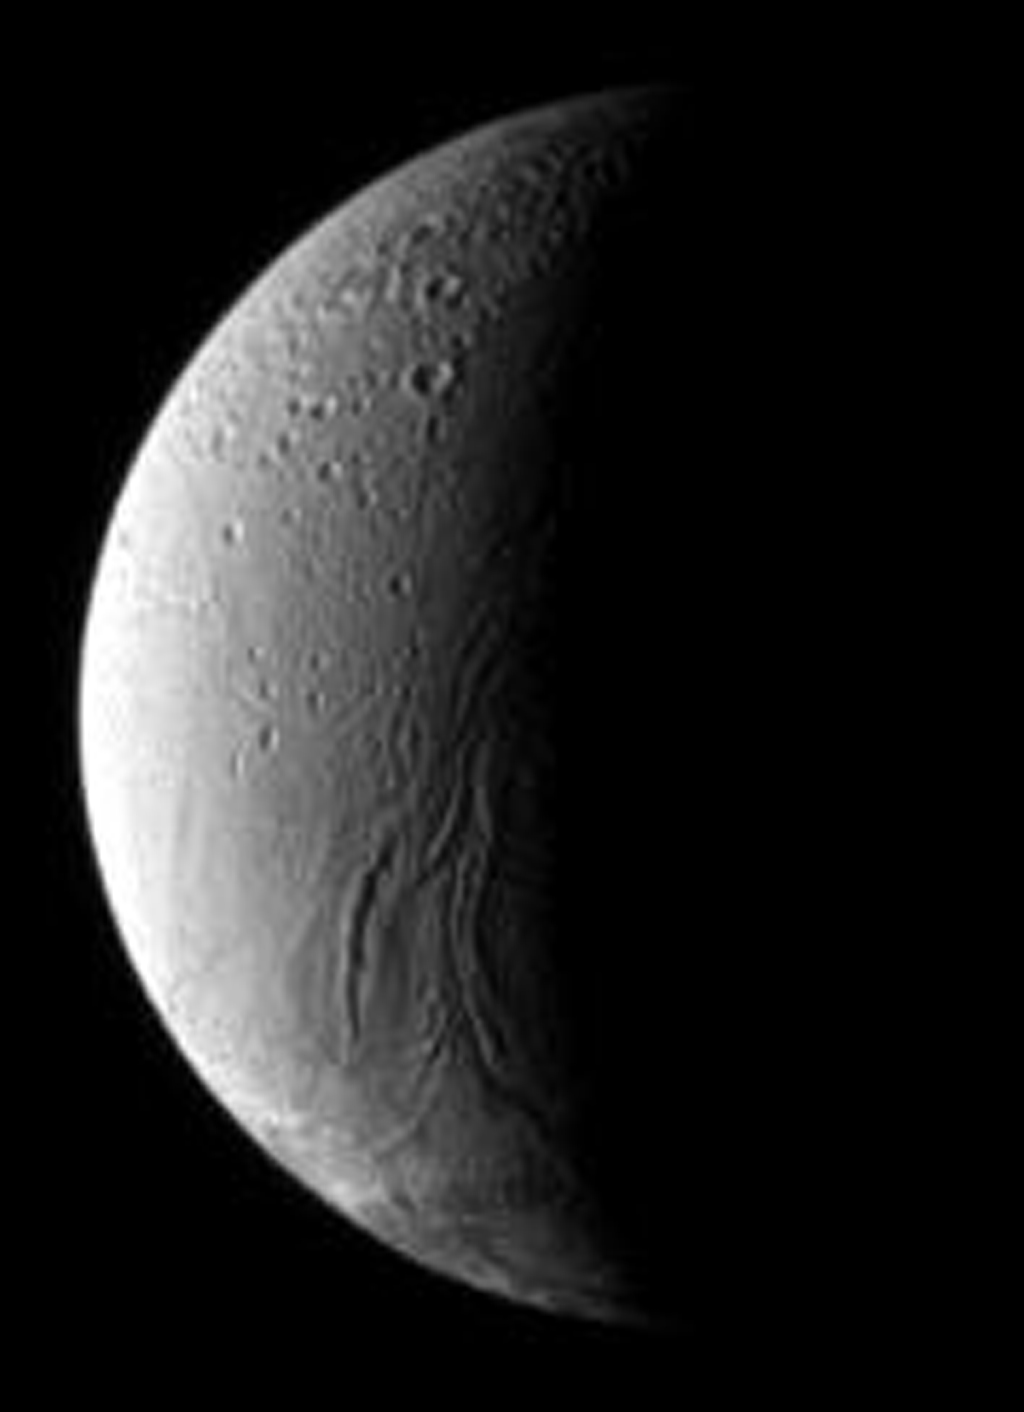 In the boundary between light and shadow on Saturn's moon Enceladus, run the Anbar Fossae, a series of narrow, shallow depressions. This image was taken by NASA's Cassini spacecraft's narrow-angle camera on Dec. 17, 2008.